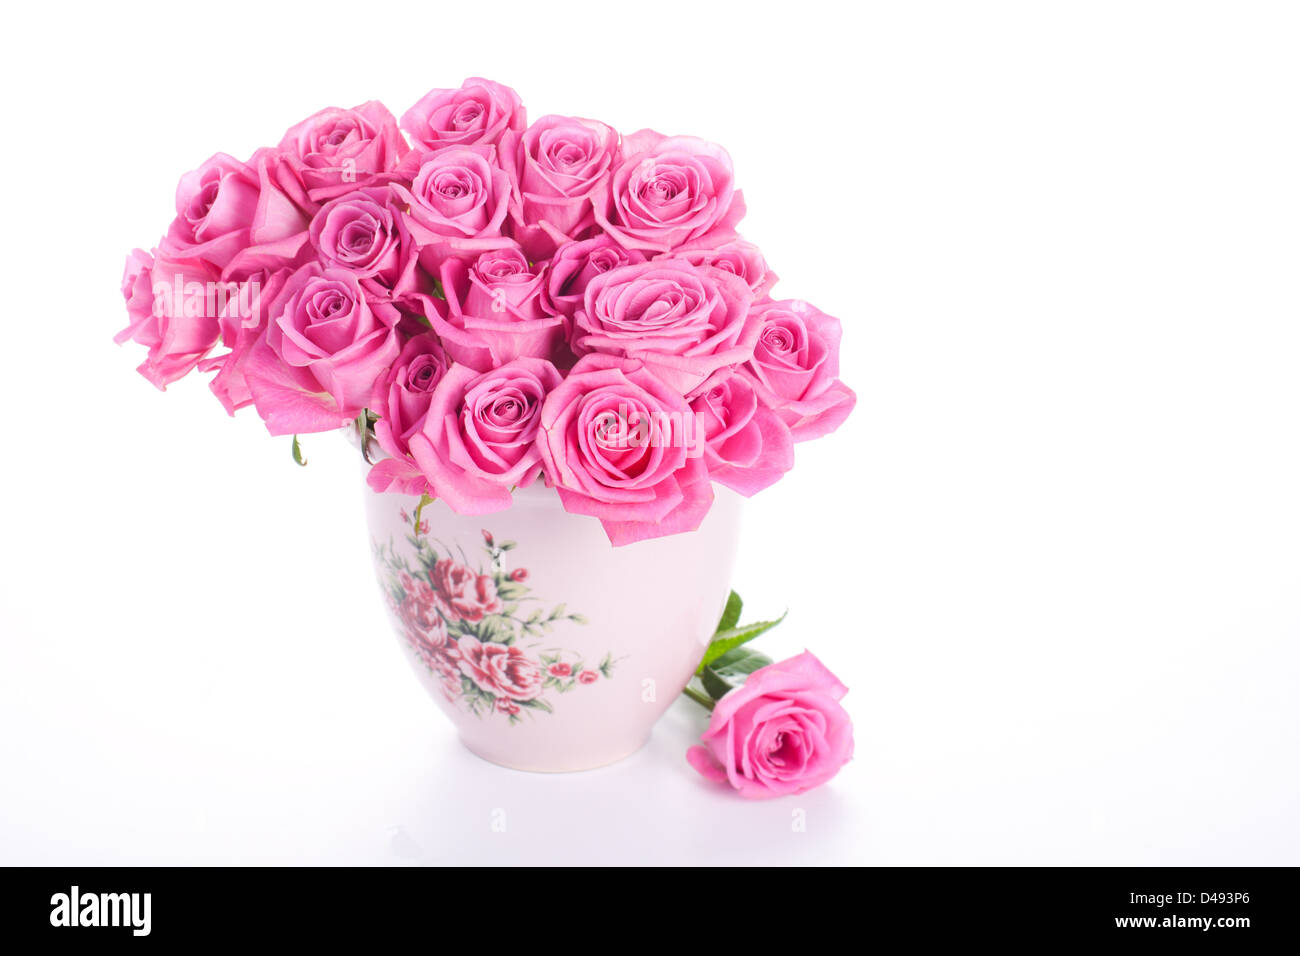 Pink roses in vase isolated on white background Stock Photo